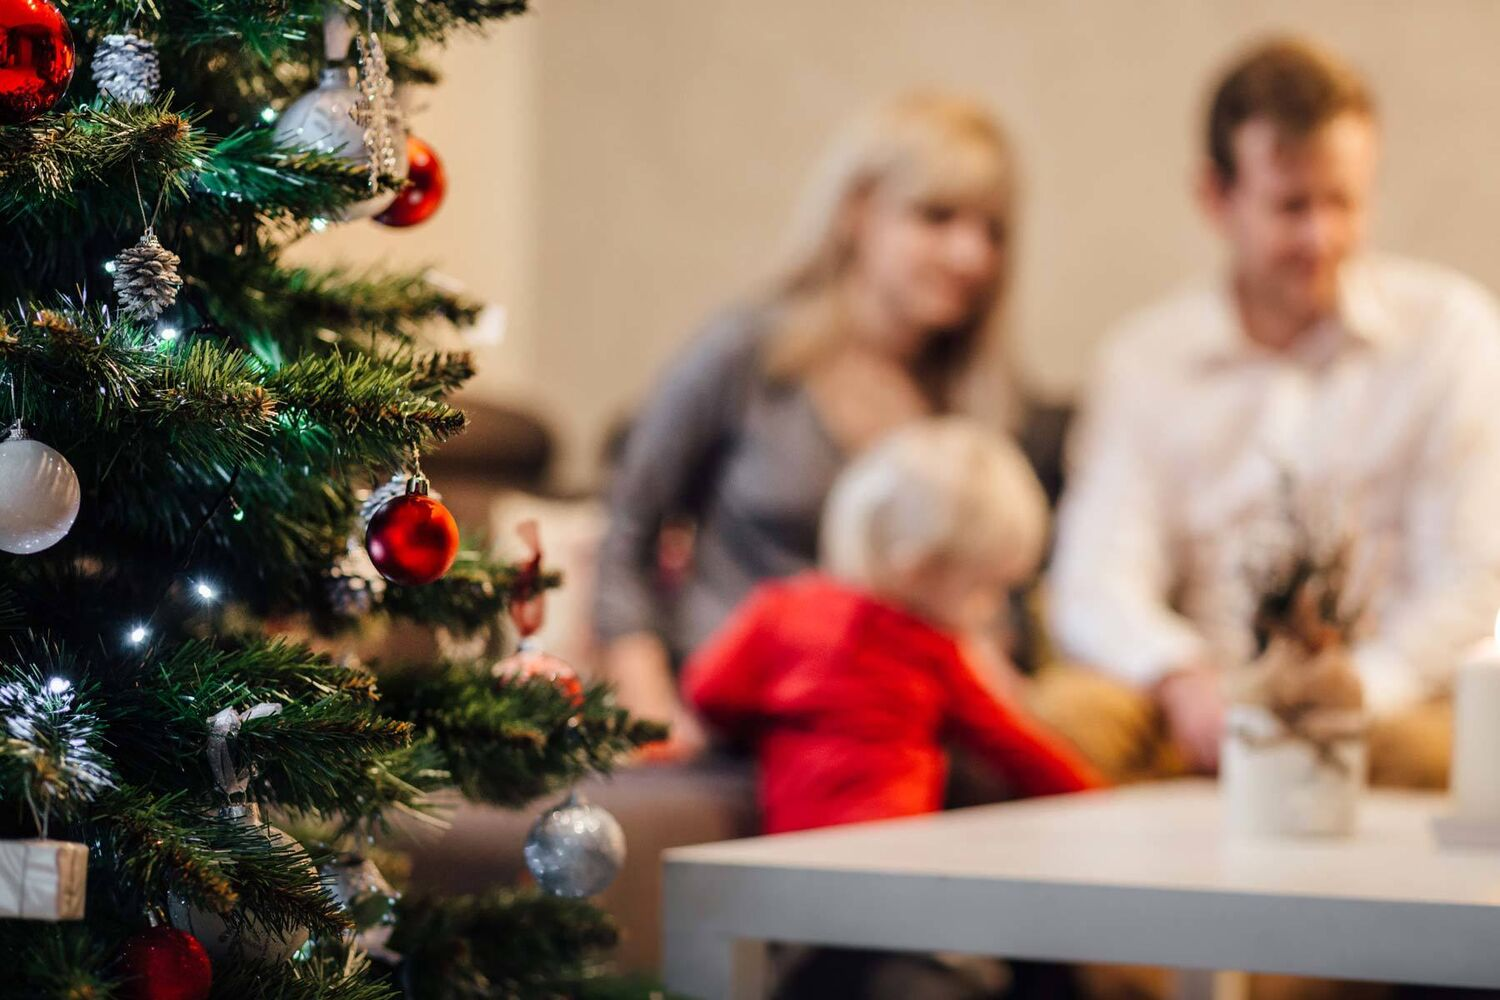 Decorated Christmas Tree In Focus With Mother Father And Young Son In Background